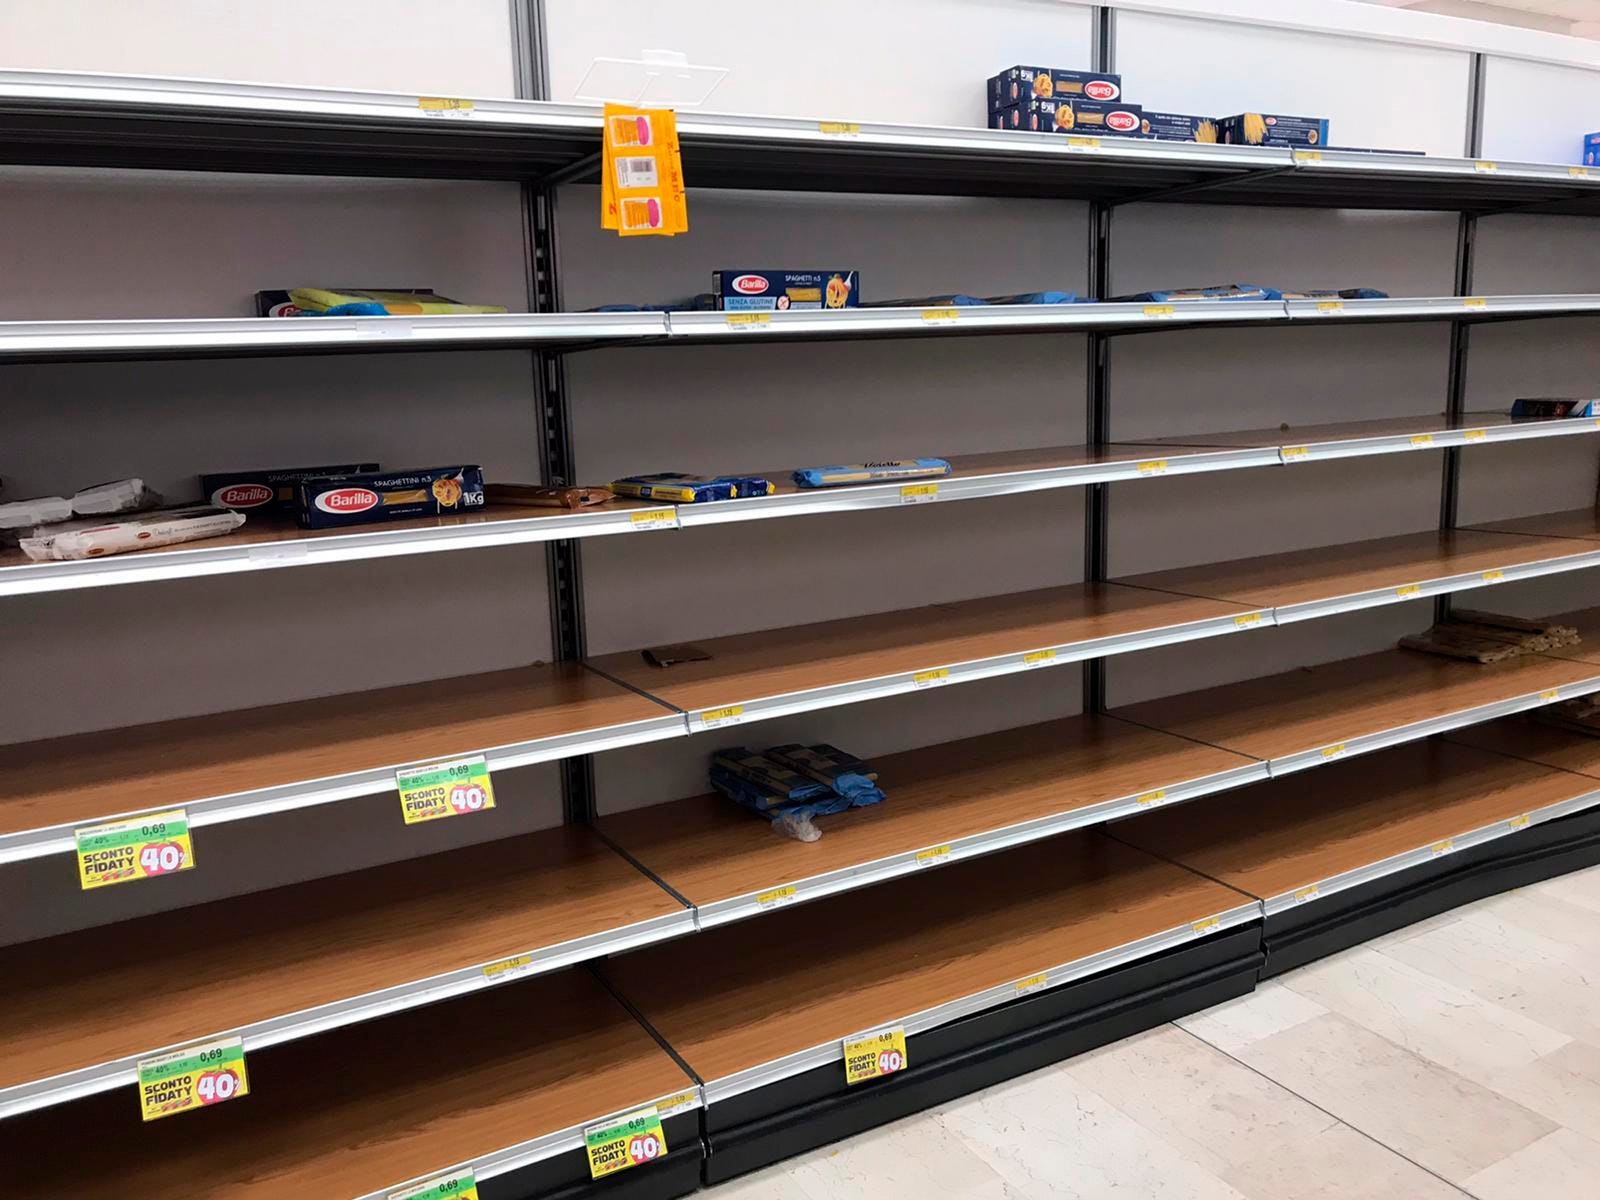 Empty shelves are seen in a supermarket in Rozzano, near Milan, Sunday, Feb. 23, 2020, as fears rapidly spread in Northern Italy with a sudden surge of COVID-19 cases.